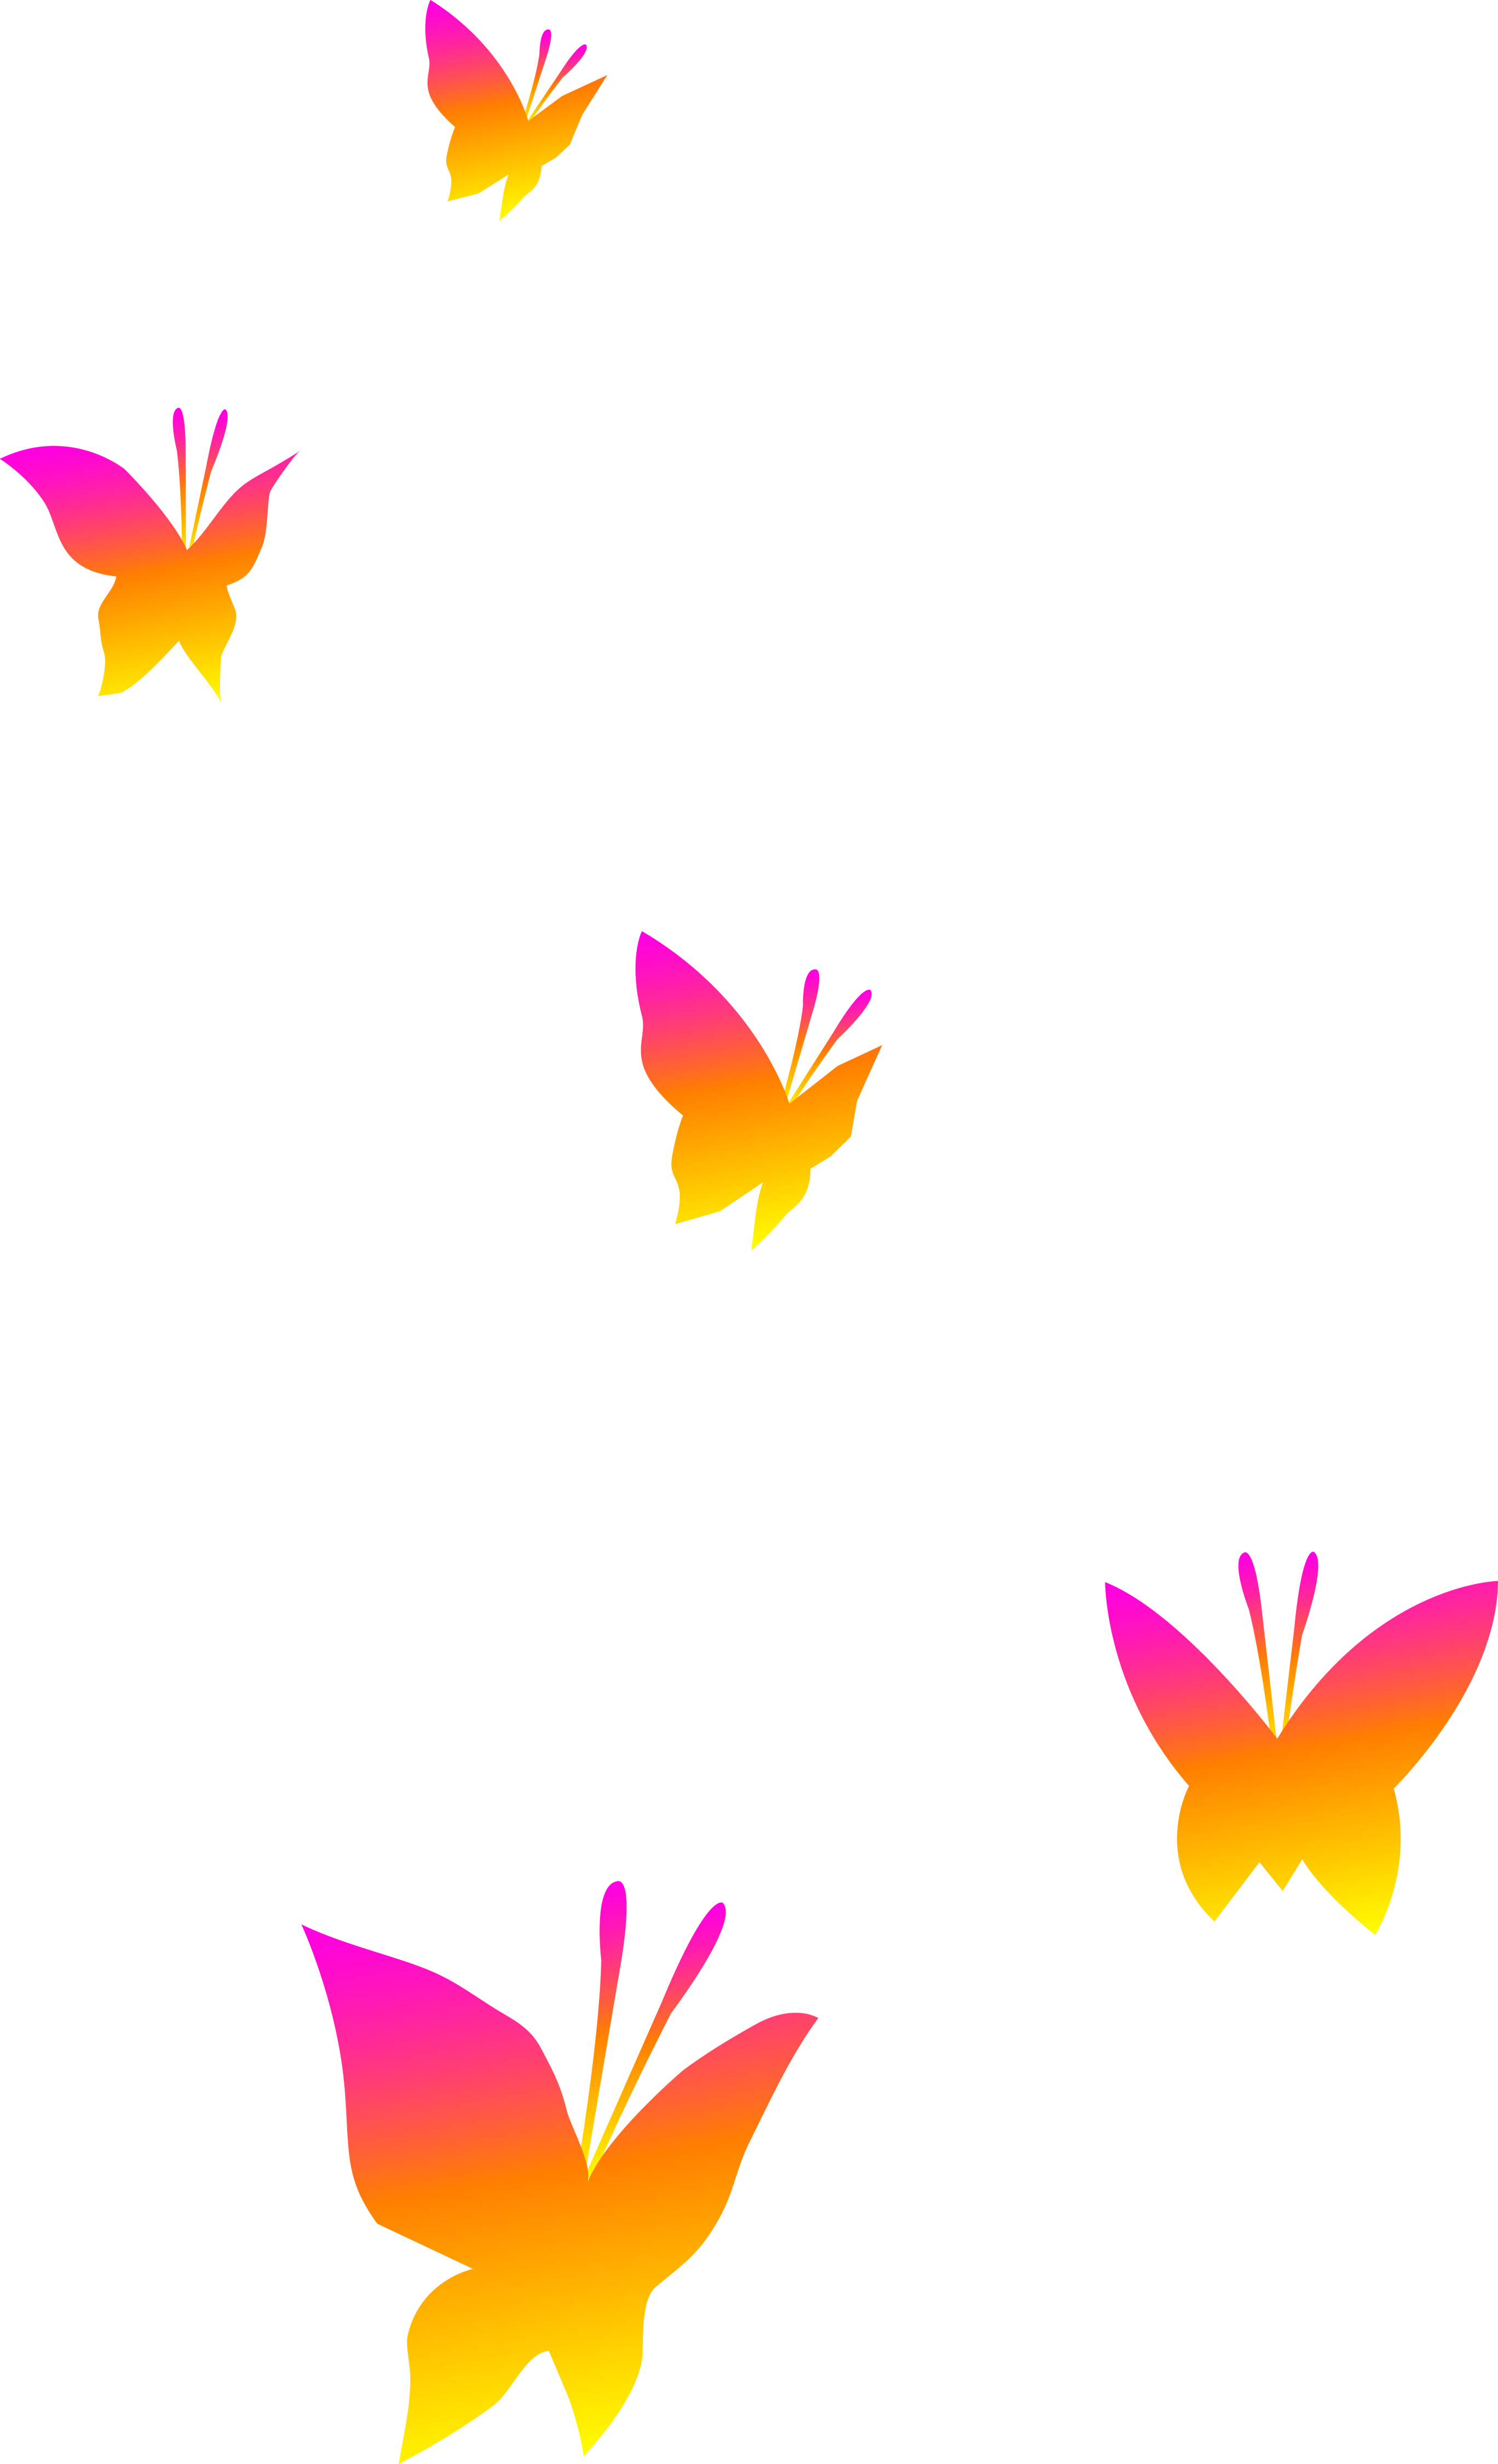 Google free transparent background. Clipart with download best